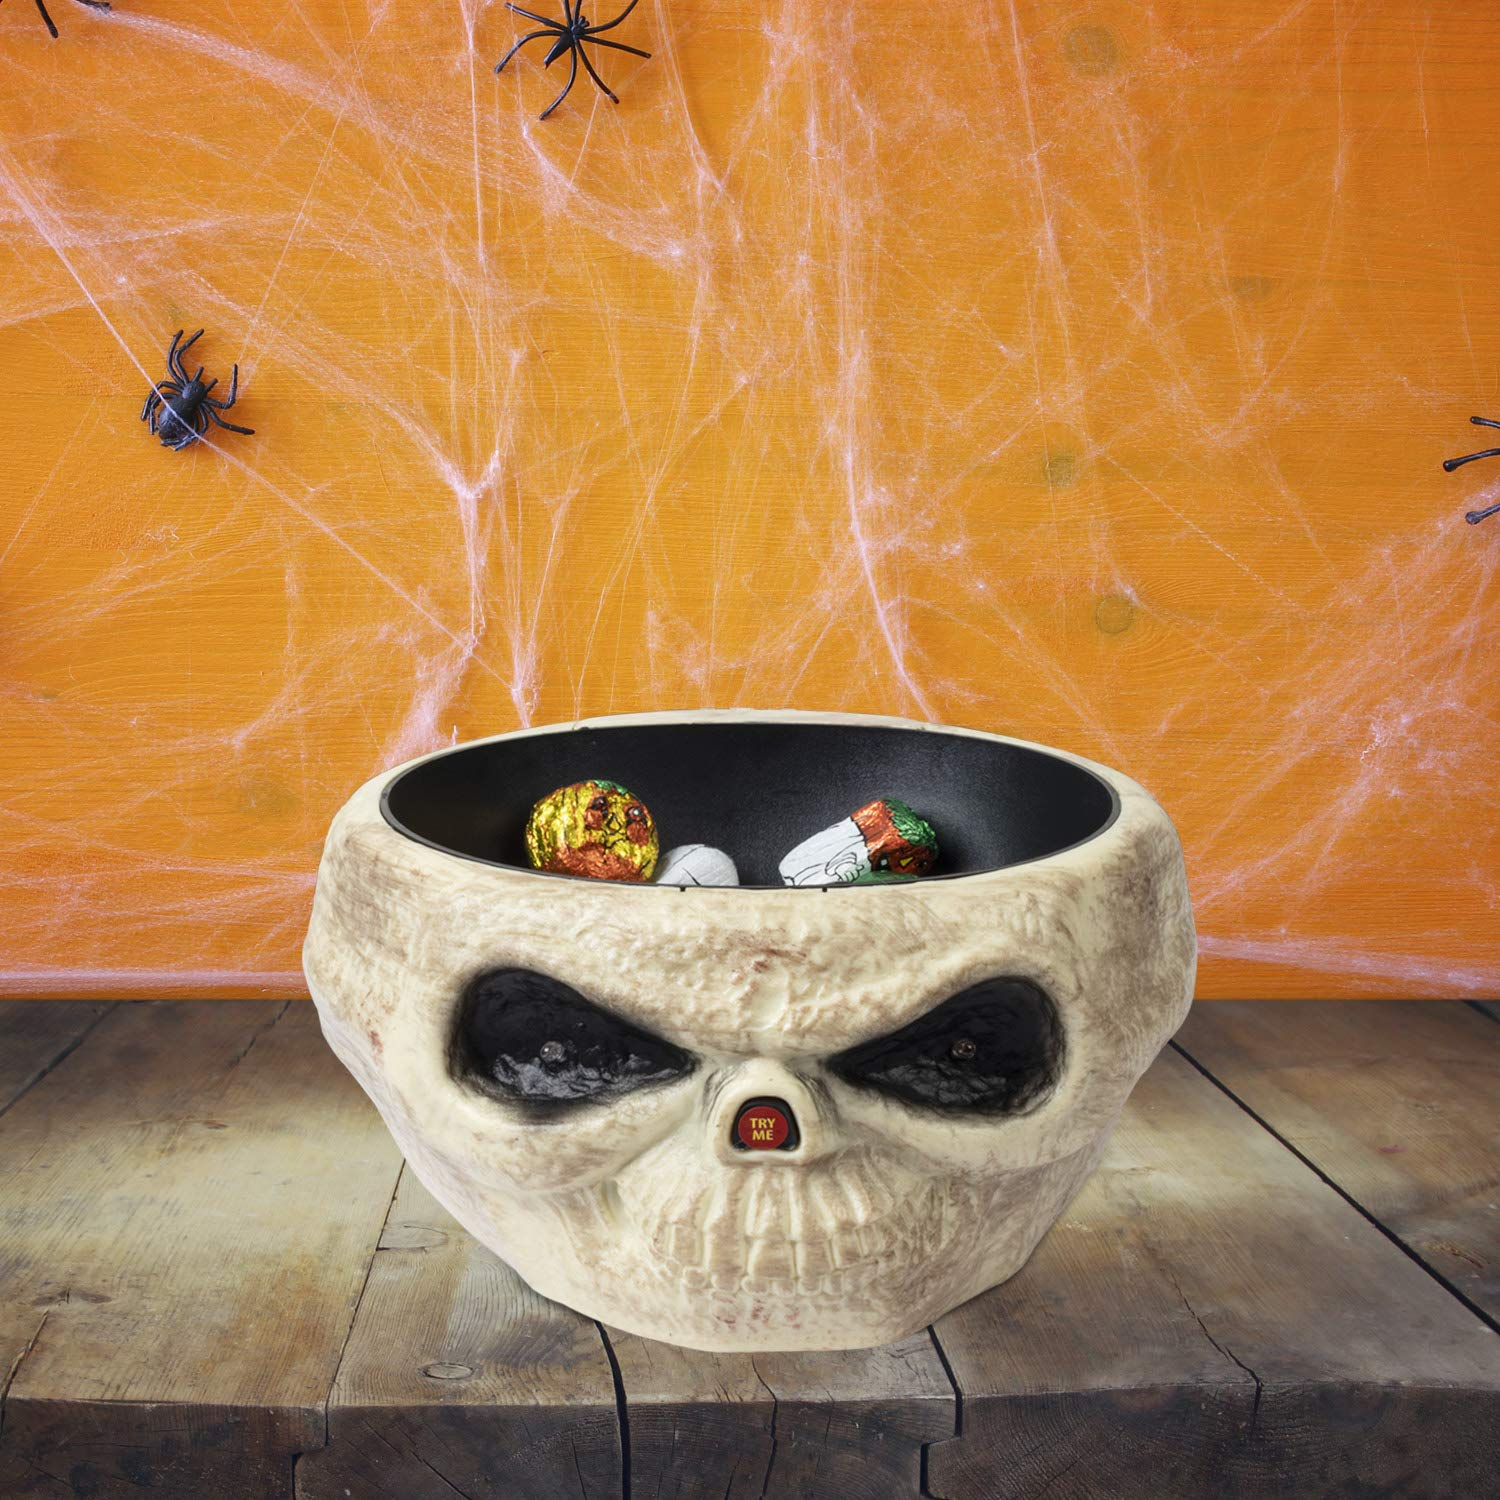 ITART Halloween Candy Bowl Grim Reaper Animated Candy Bowls Dish Halloween Decorations for Treat or Trick Candy Holder Container